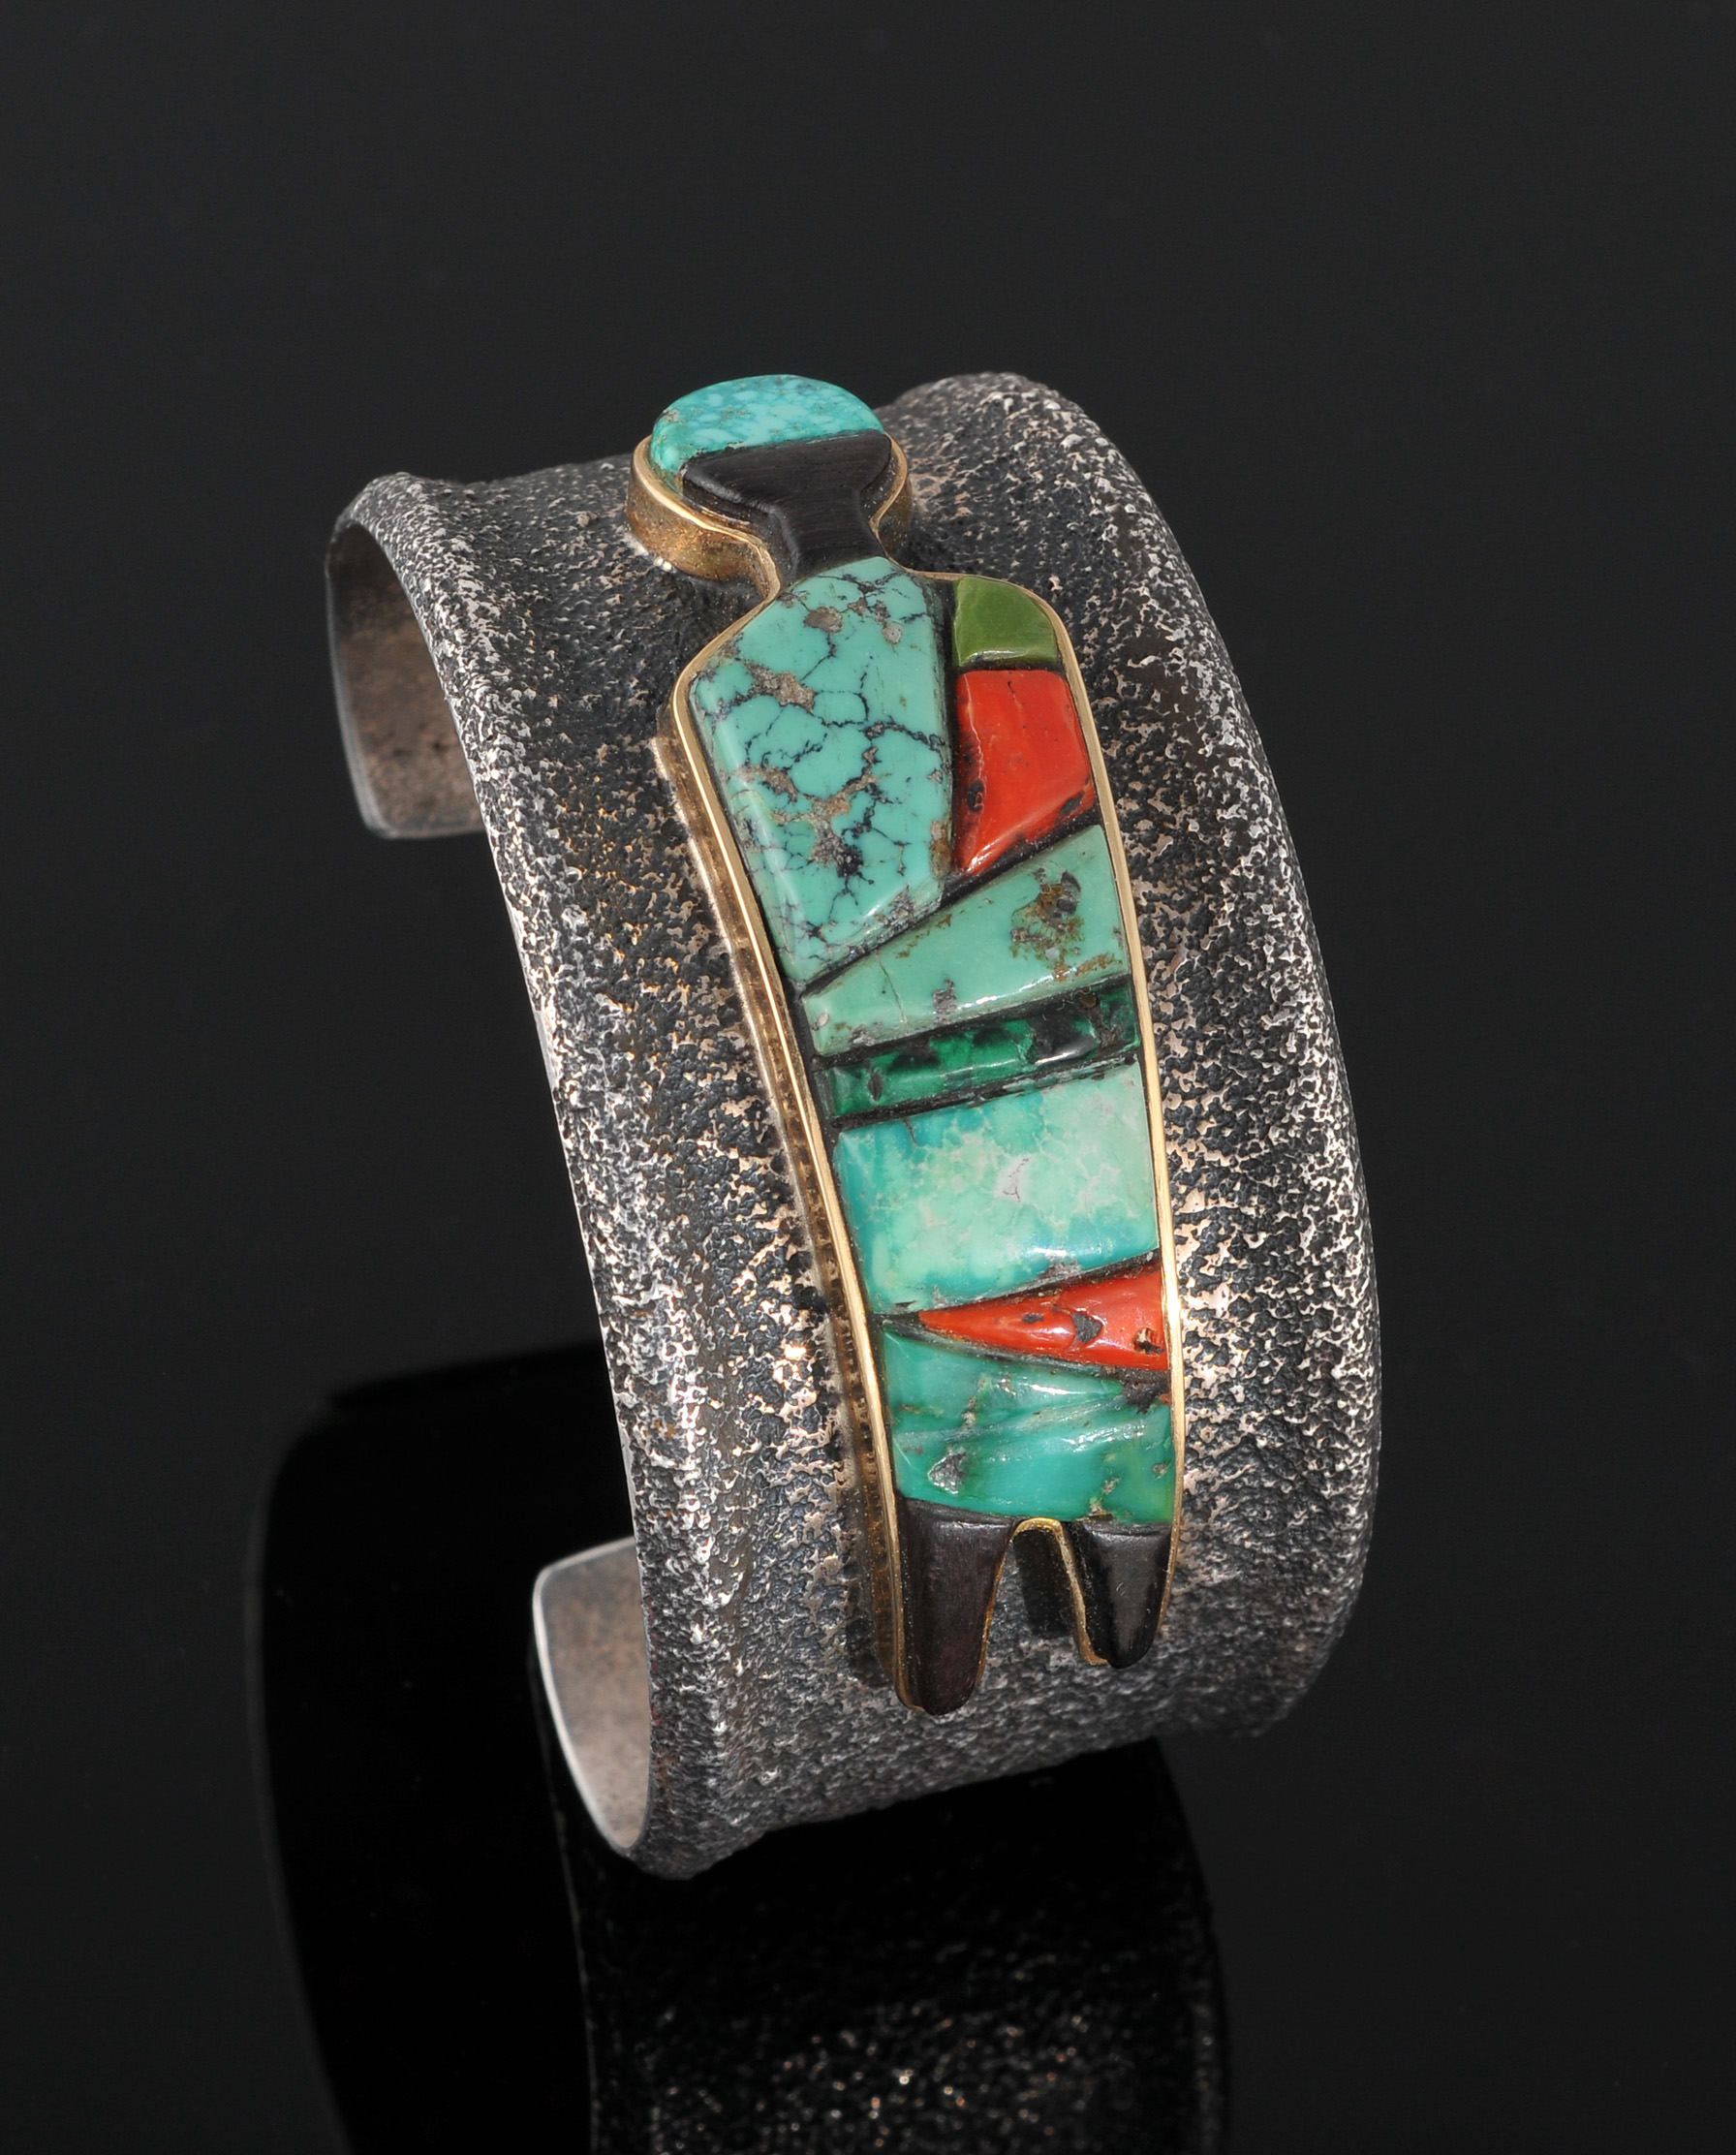 Loloma Charles Sterling Silver Bracelet With Inlay